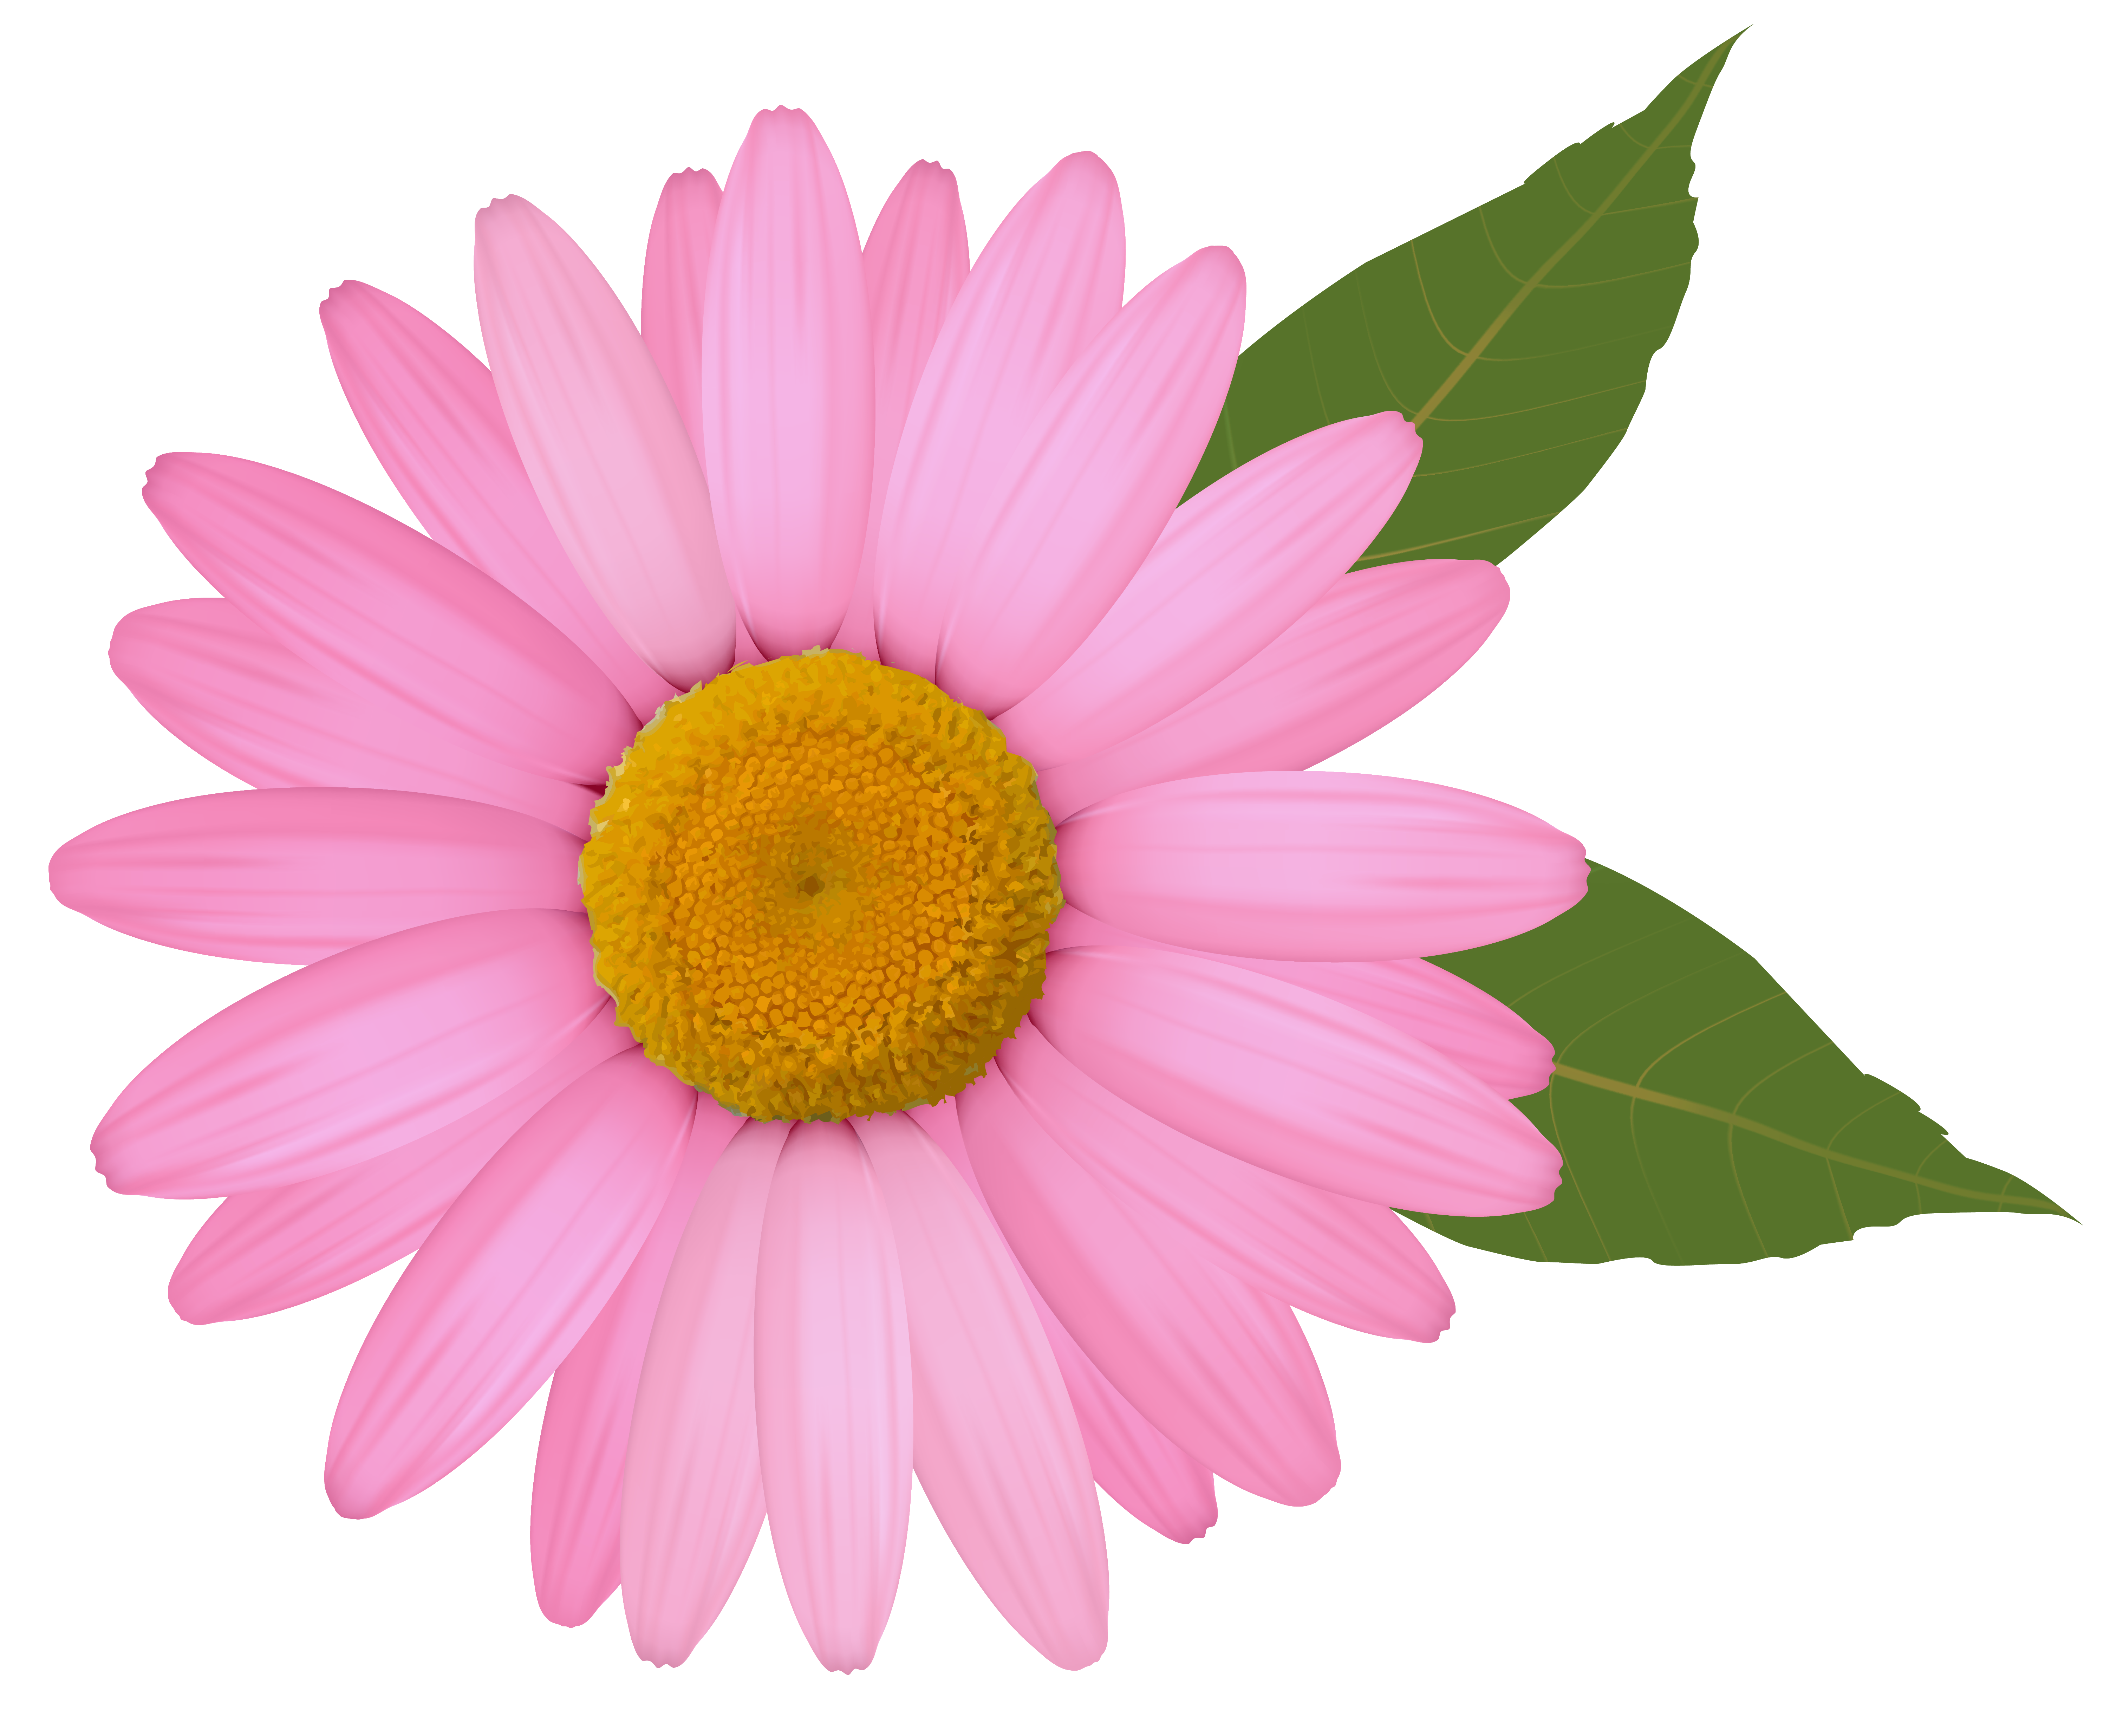 Daisy flower border clipart graphic library stock Pink Daisy PNG Clipart Image | Gallery Yopriceville - High-Quality ... graphic library stock